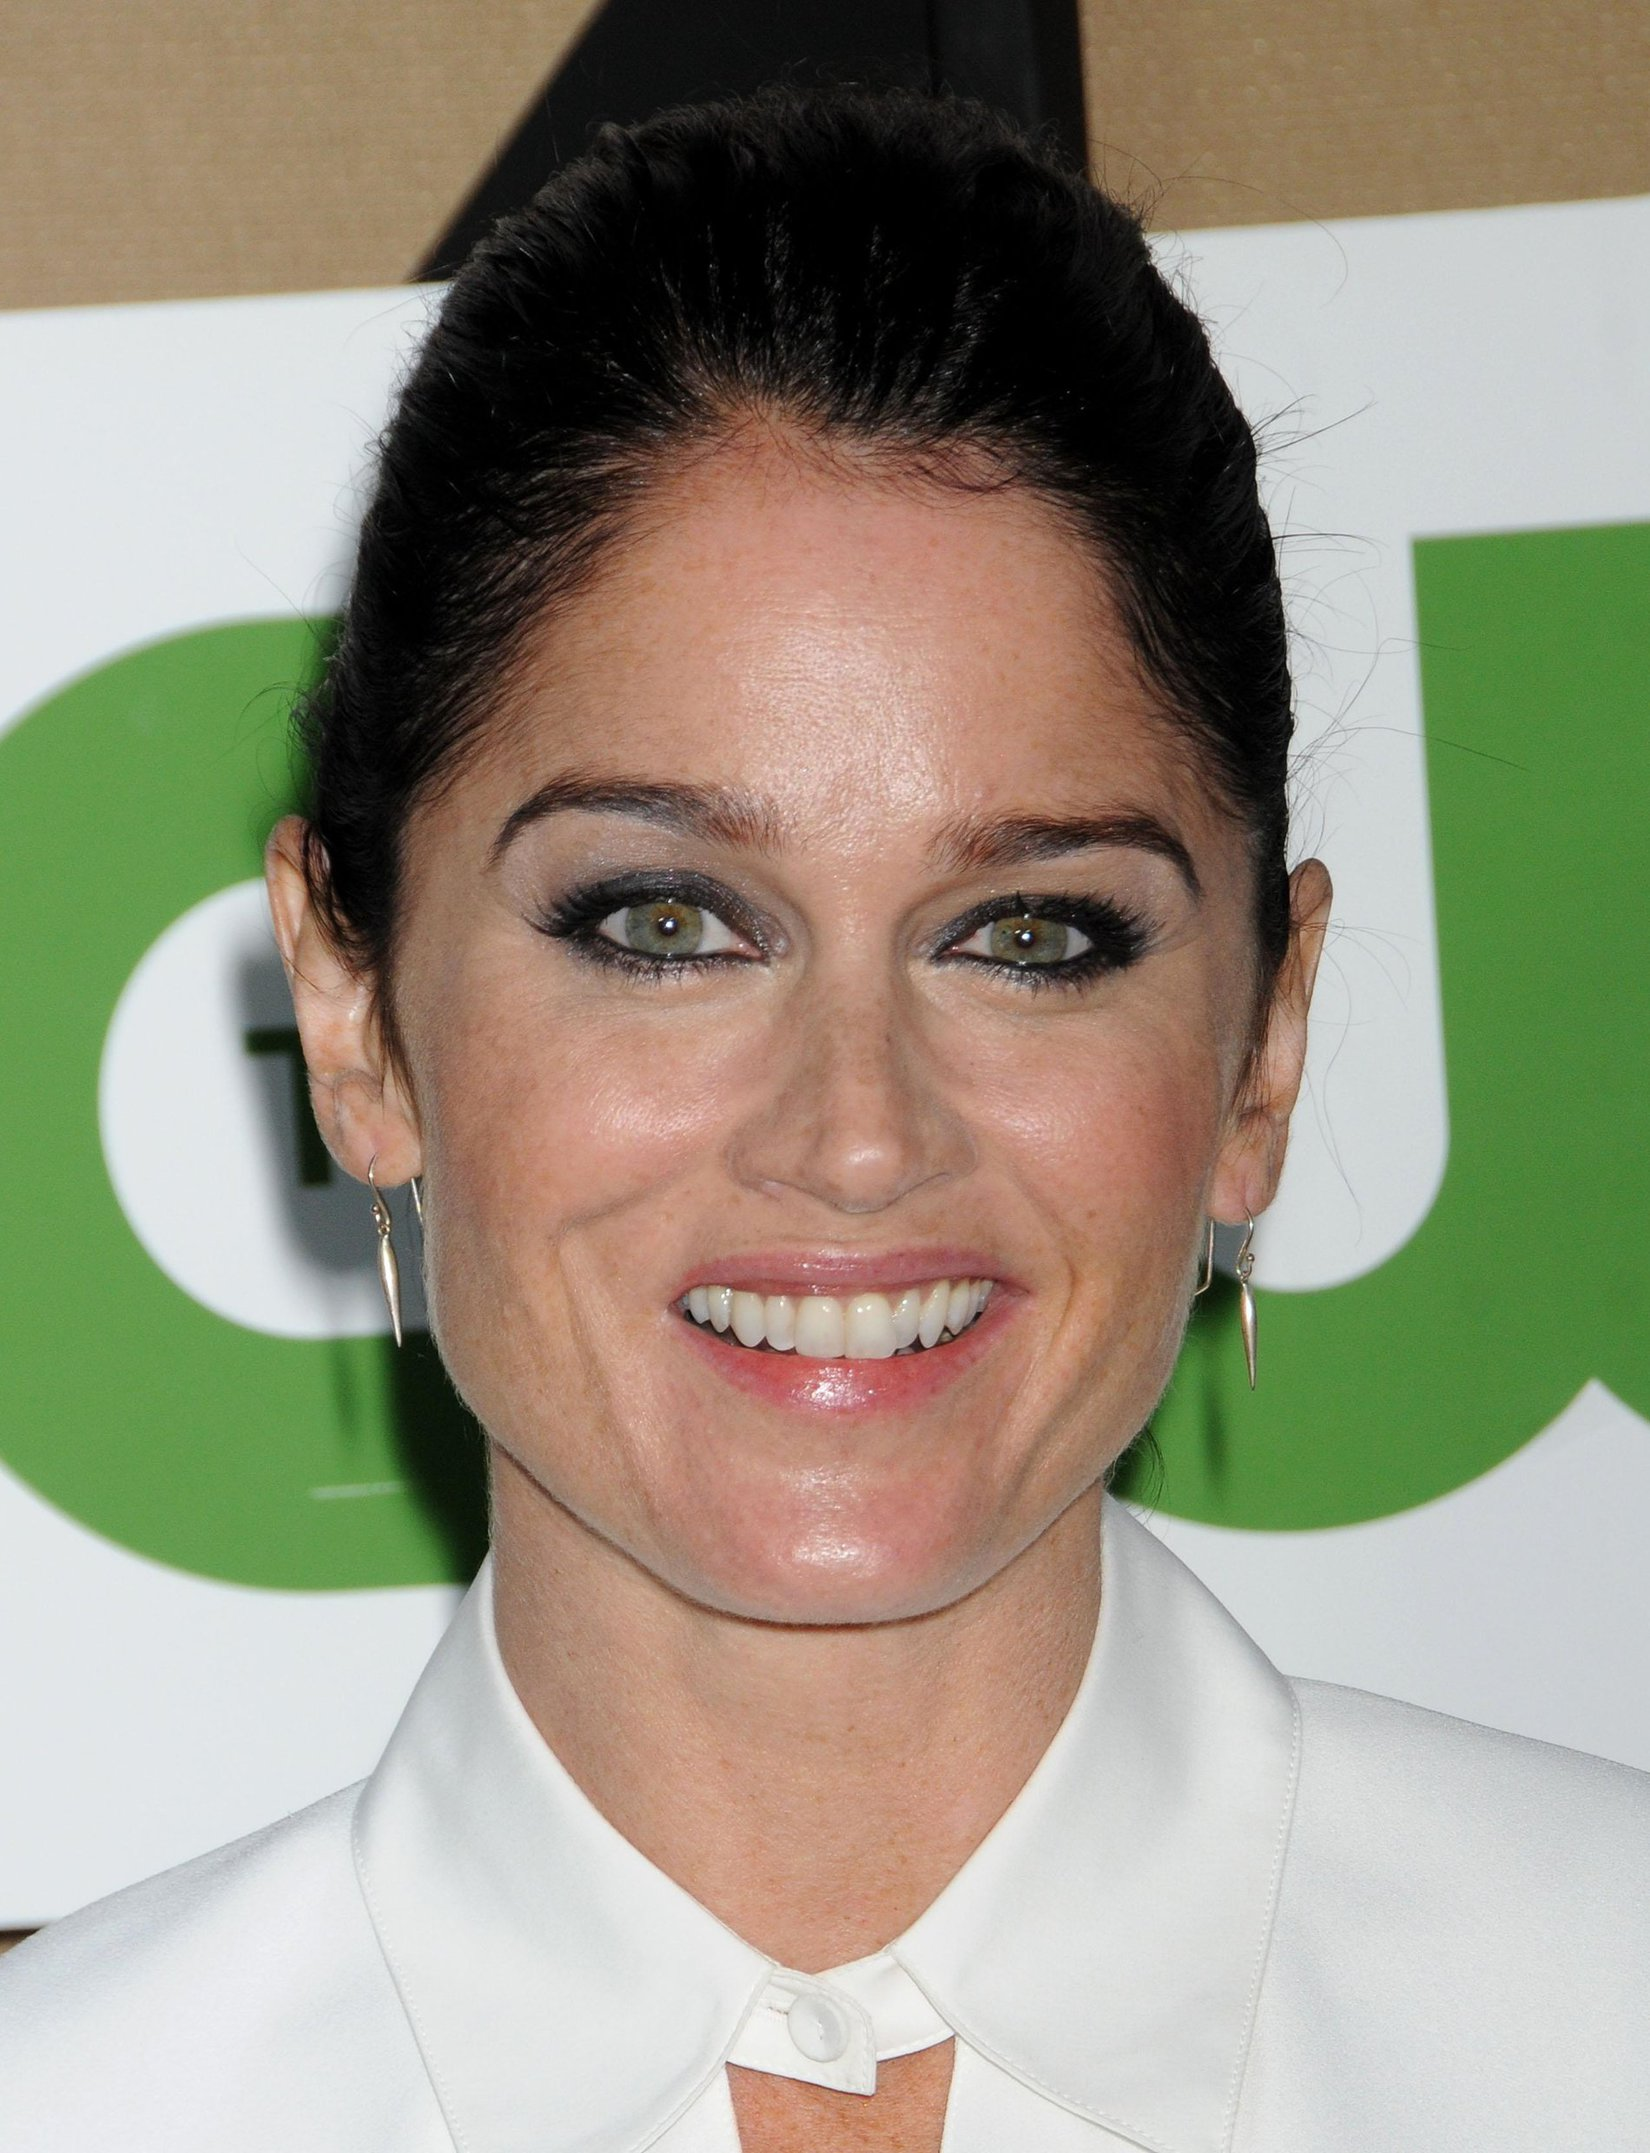 Robin Tunney Cbs Summer Tca Party Los Angeles California July 29, 2013 Unrated-6097